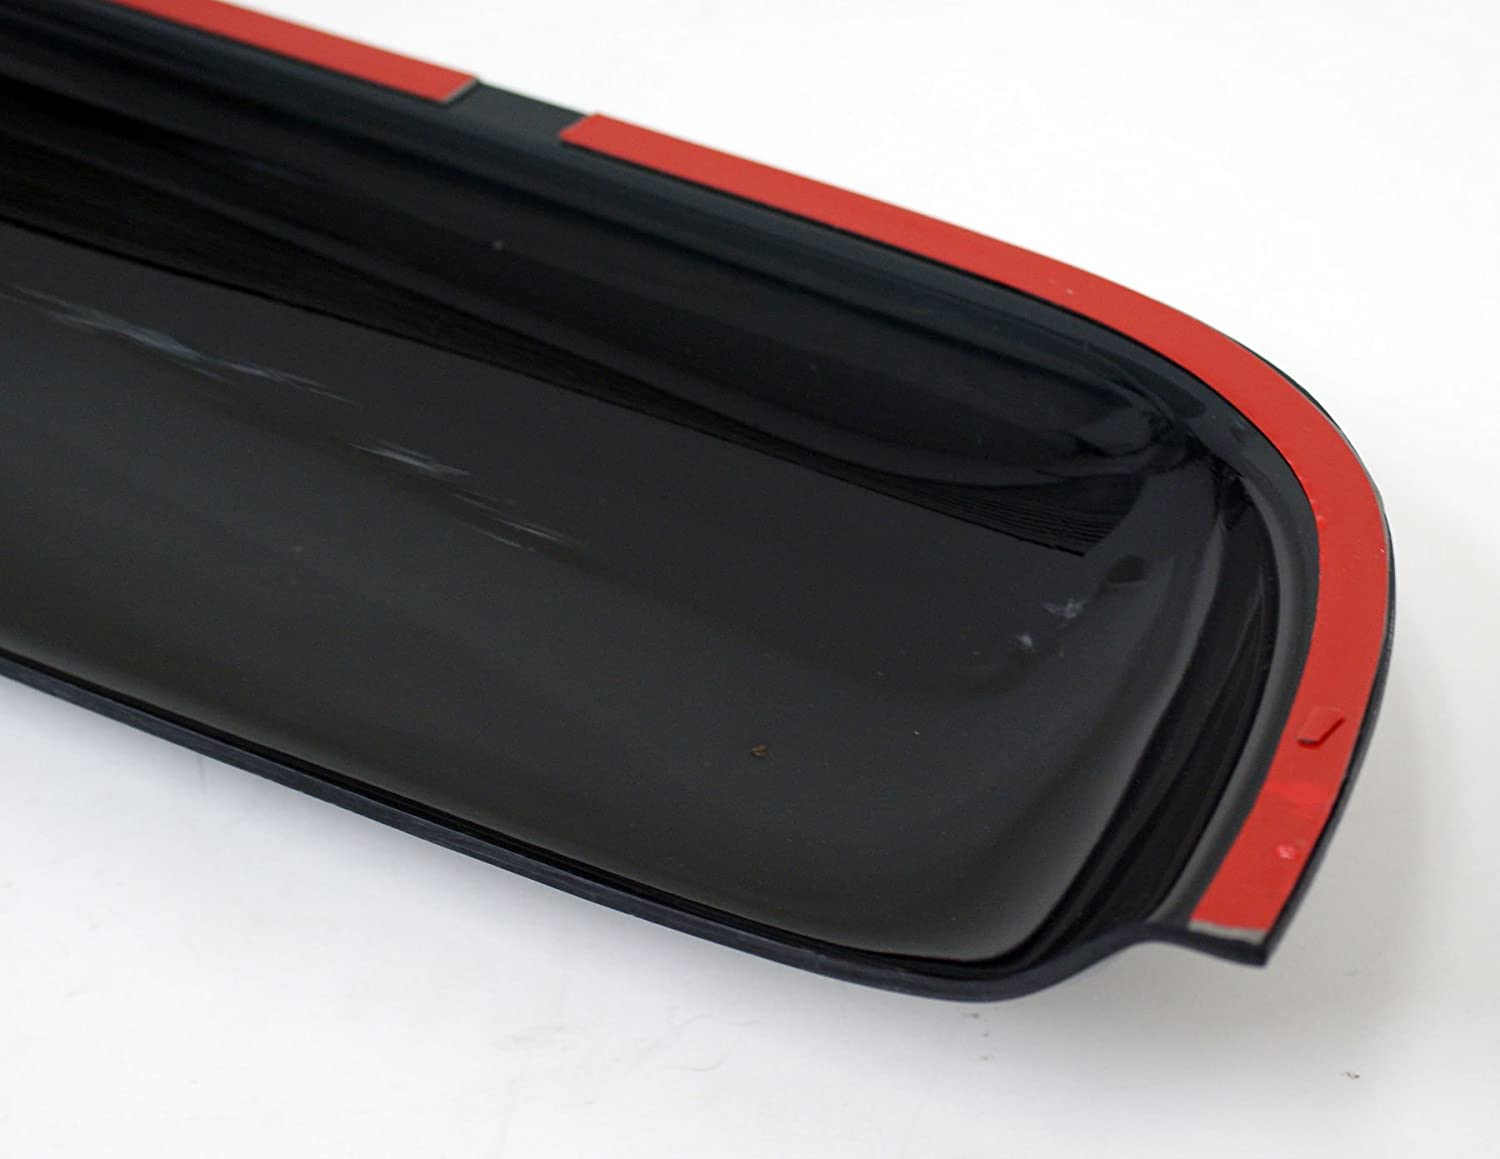 TuningPros DSV3-419 compatible with 2000-2005 Toyota Celica Sunroof Moonroof Top Wind Deflector Visor Thickness 3.0mm 880mm 34.6 Dark Smoke Set of 1